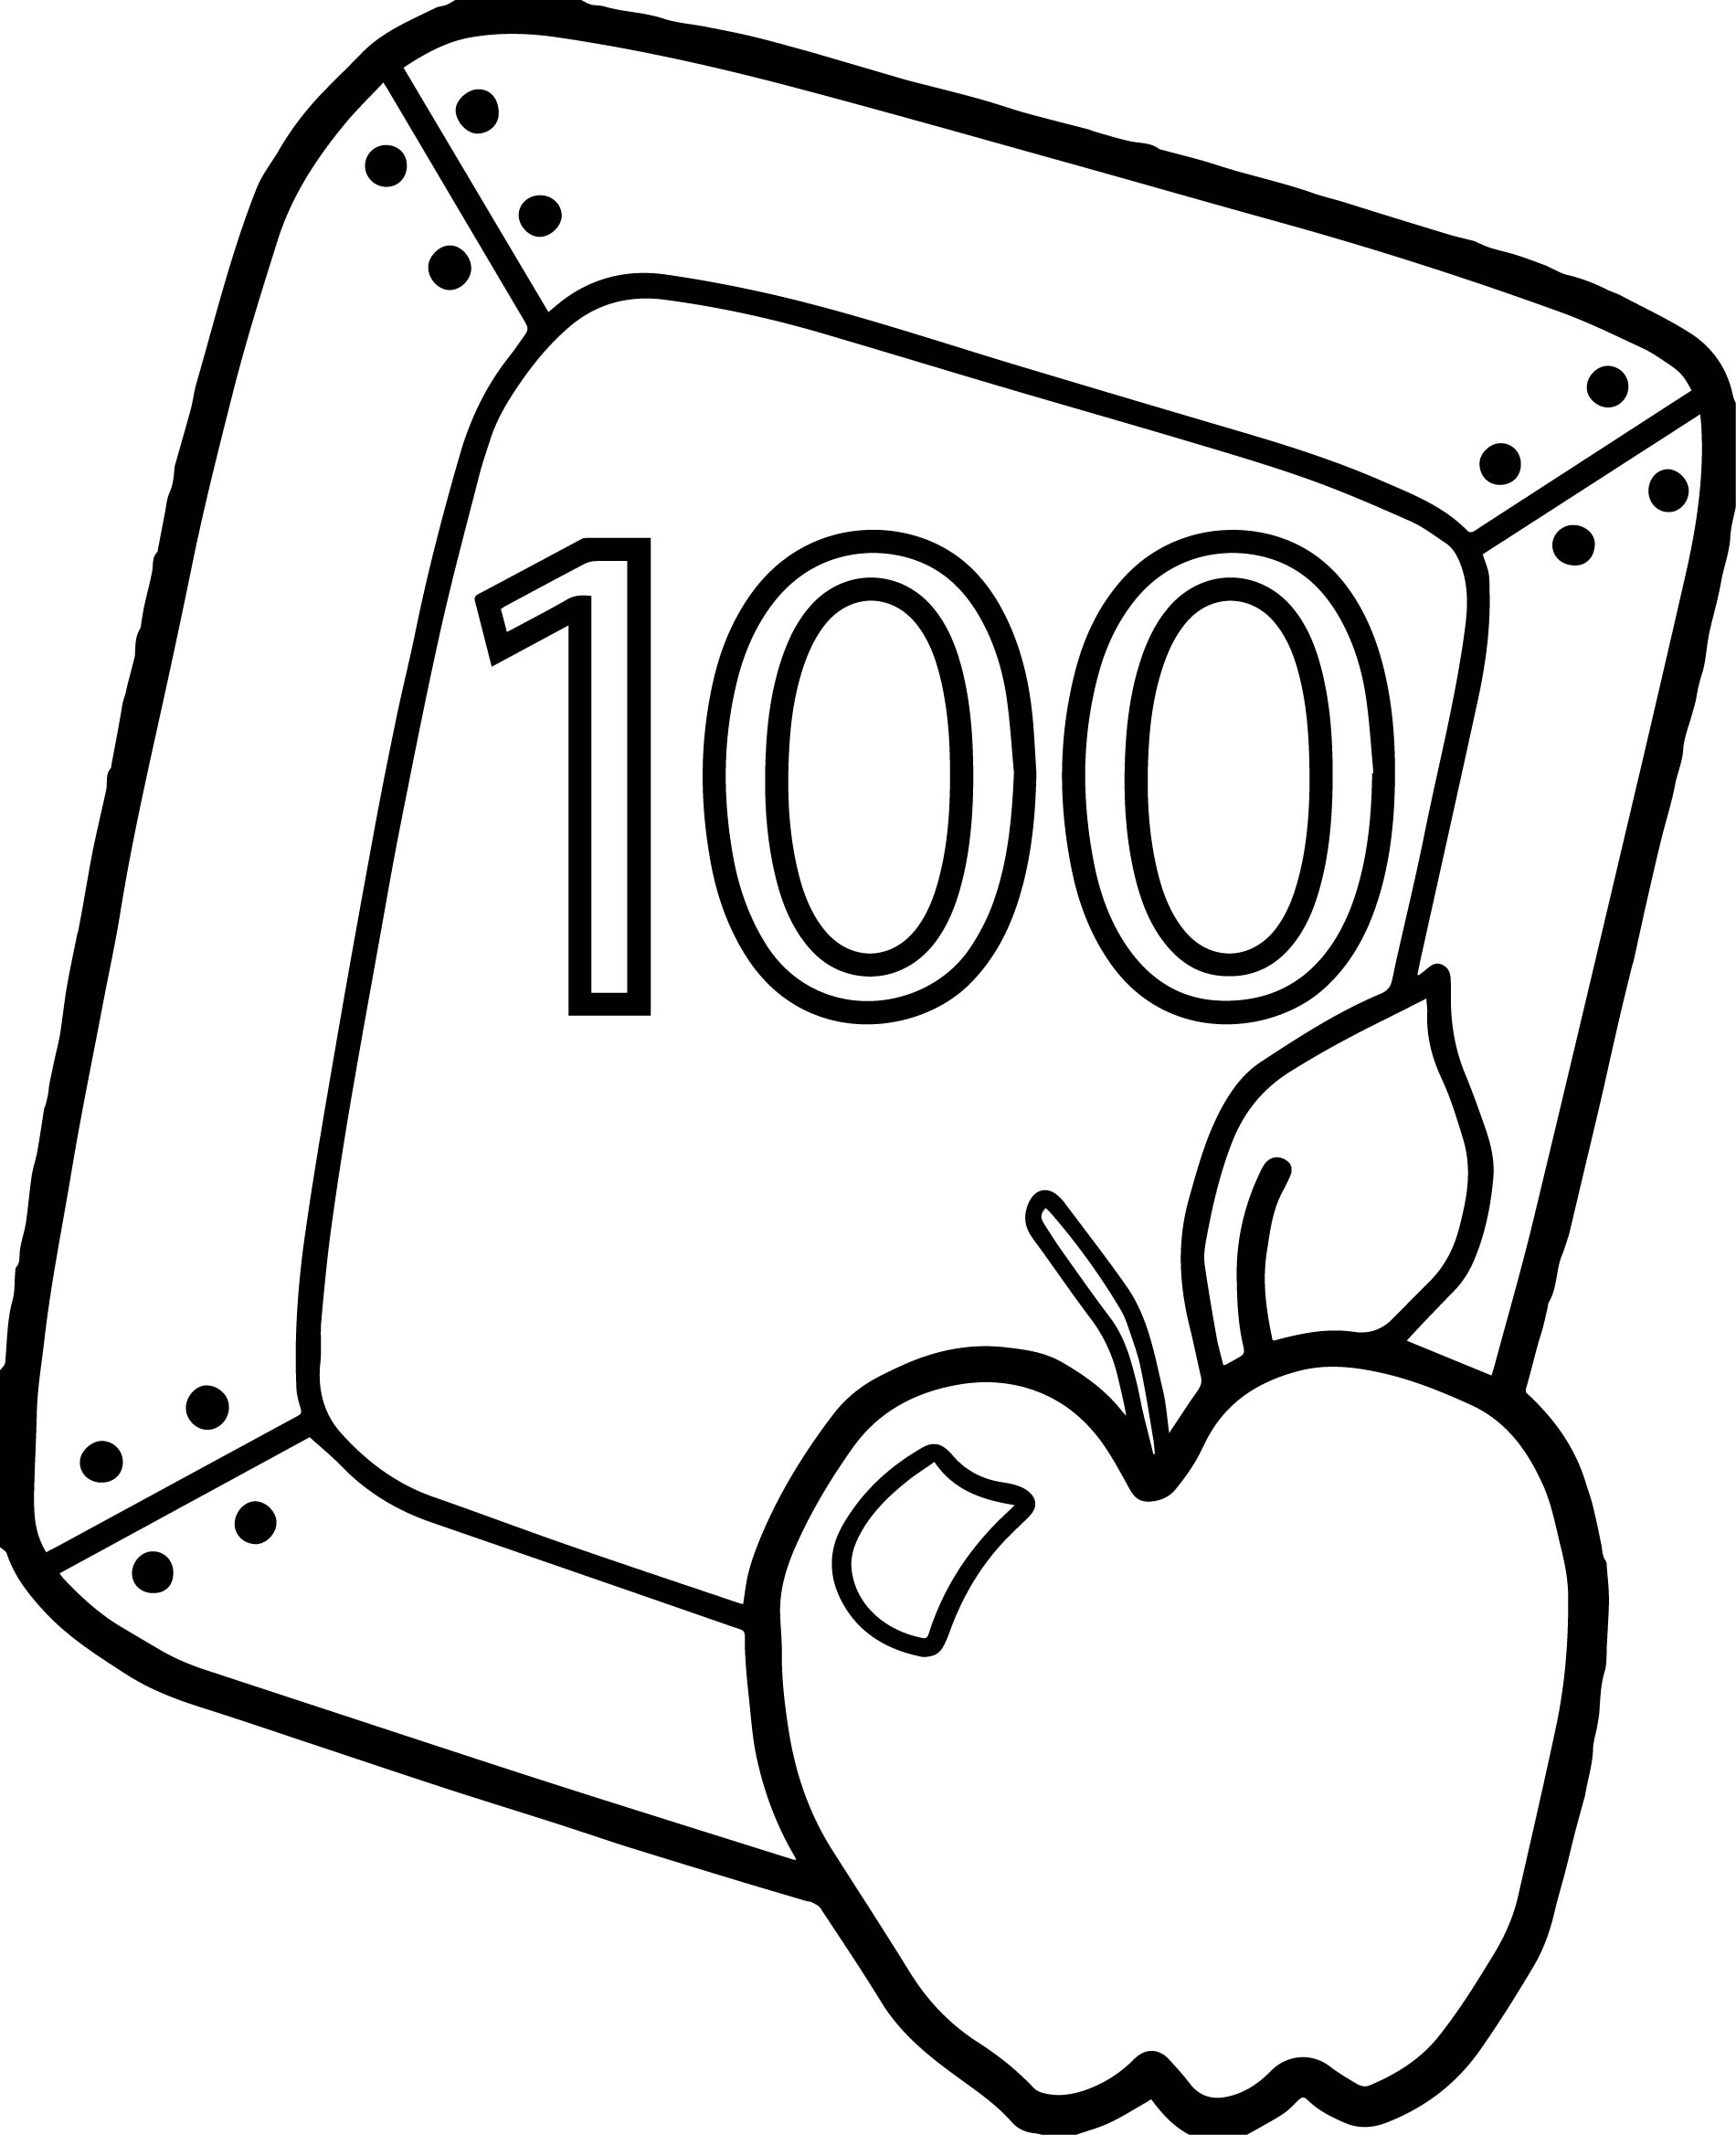 100 days of school apple board coloring page wecoloringpage